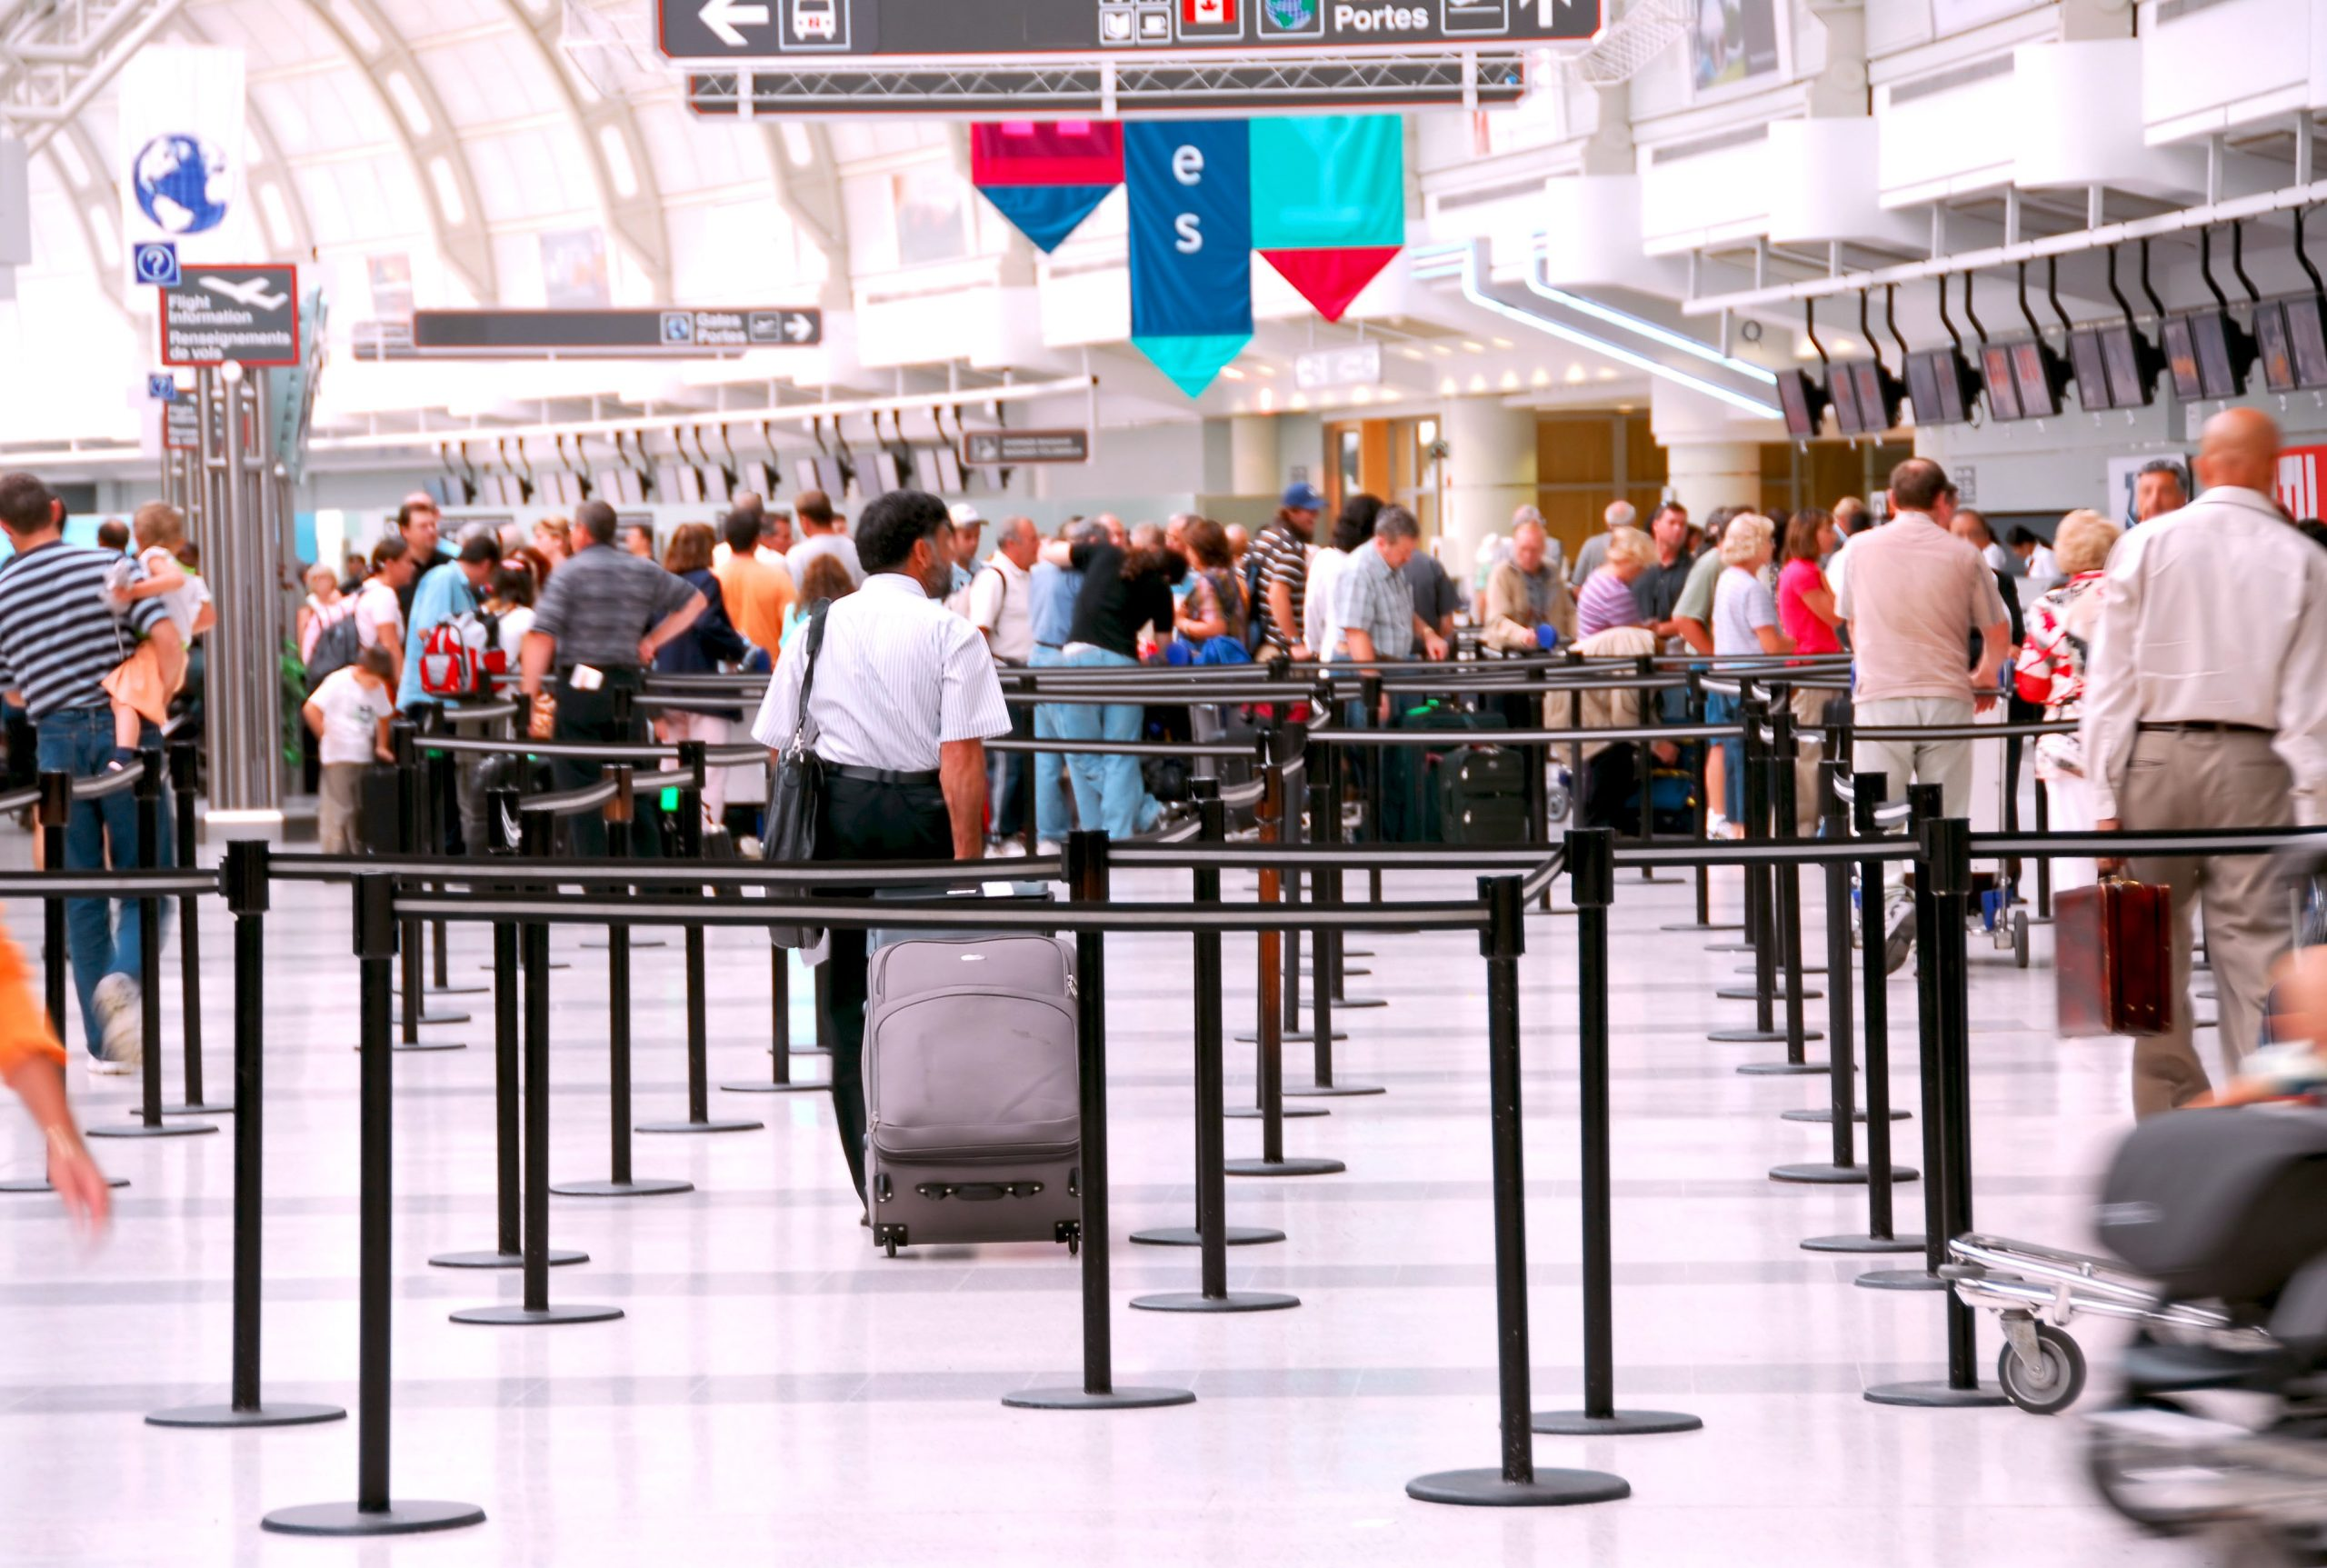 No Travel is Not Dead. Half of American's Plan to Rebook and Travel Again